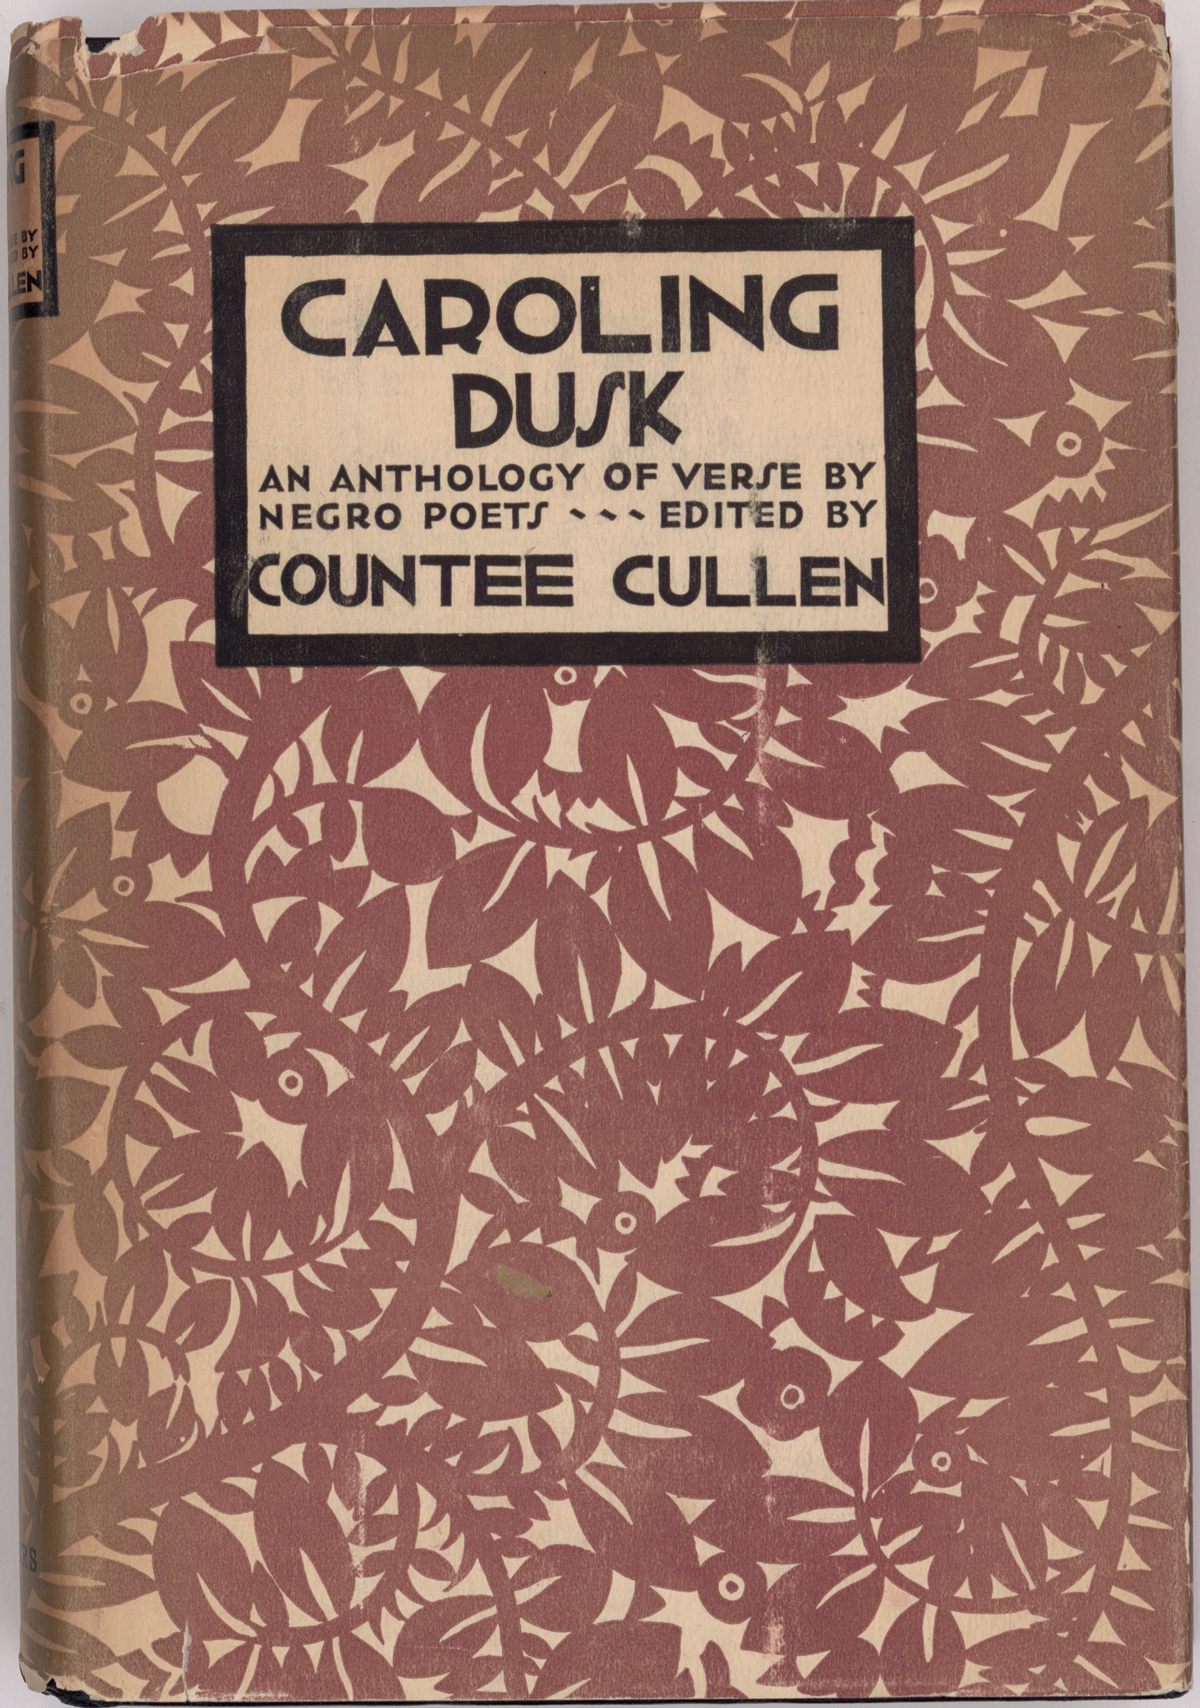 Caroling Dusk, An Anthology of Verse by Negro Poets